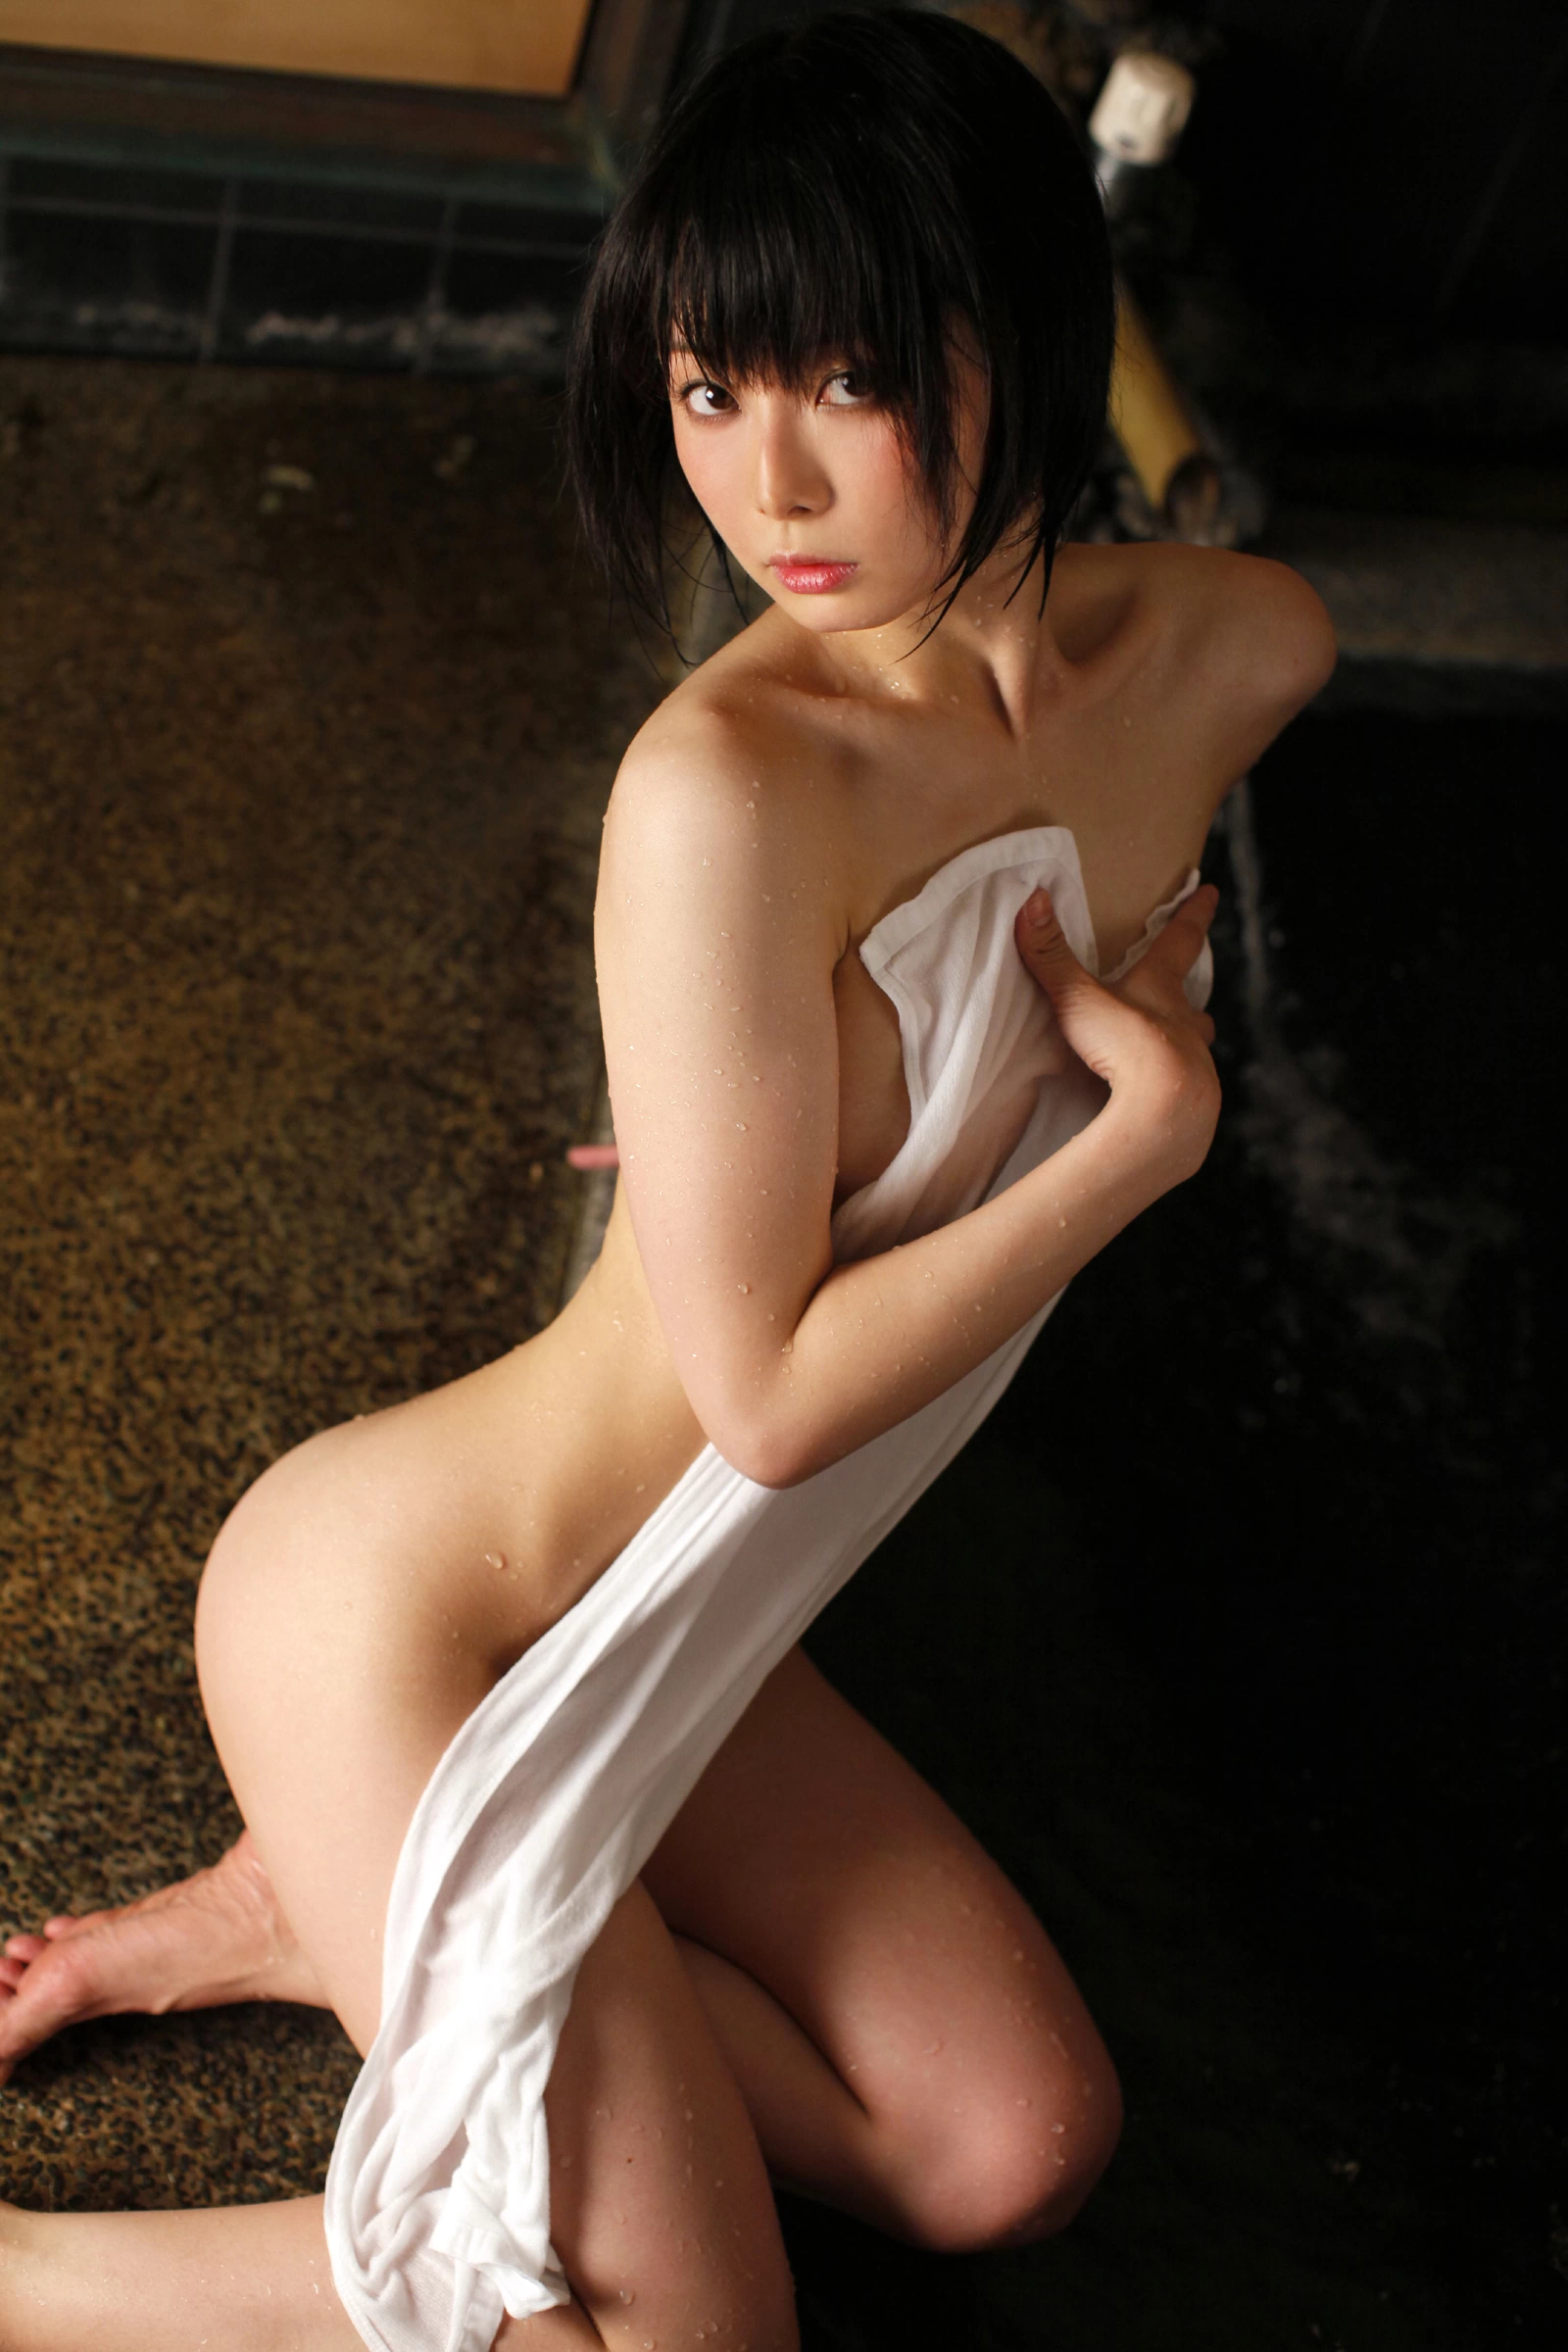 asian hiding her tits with a towel.jpg